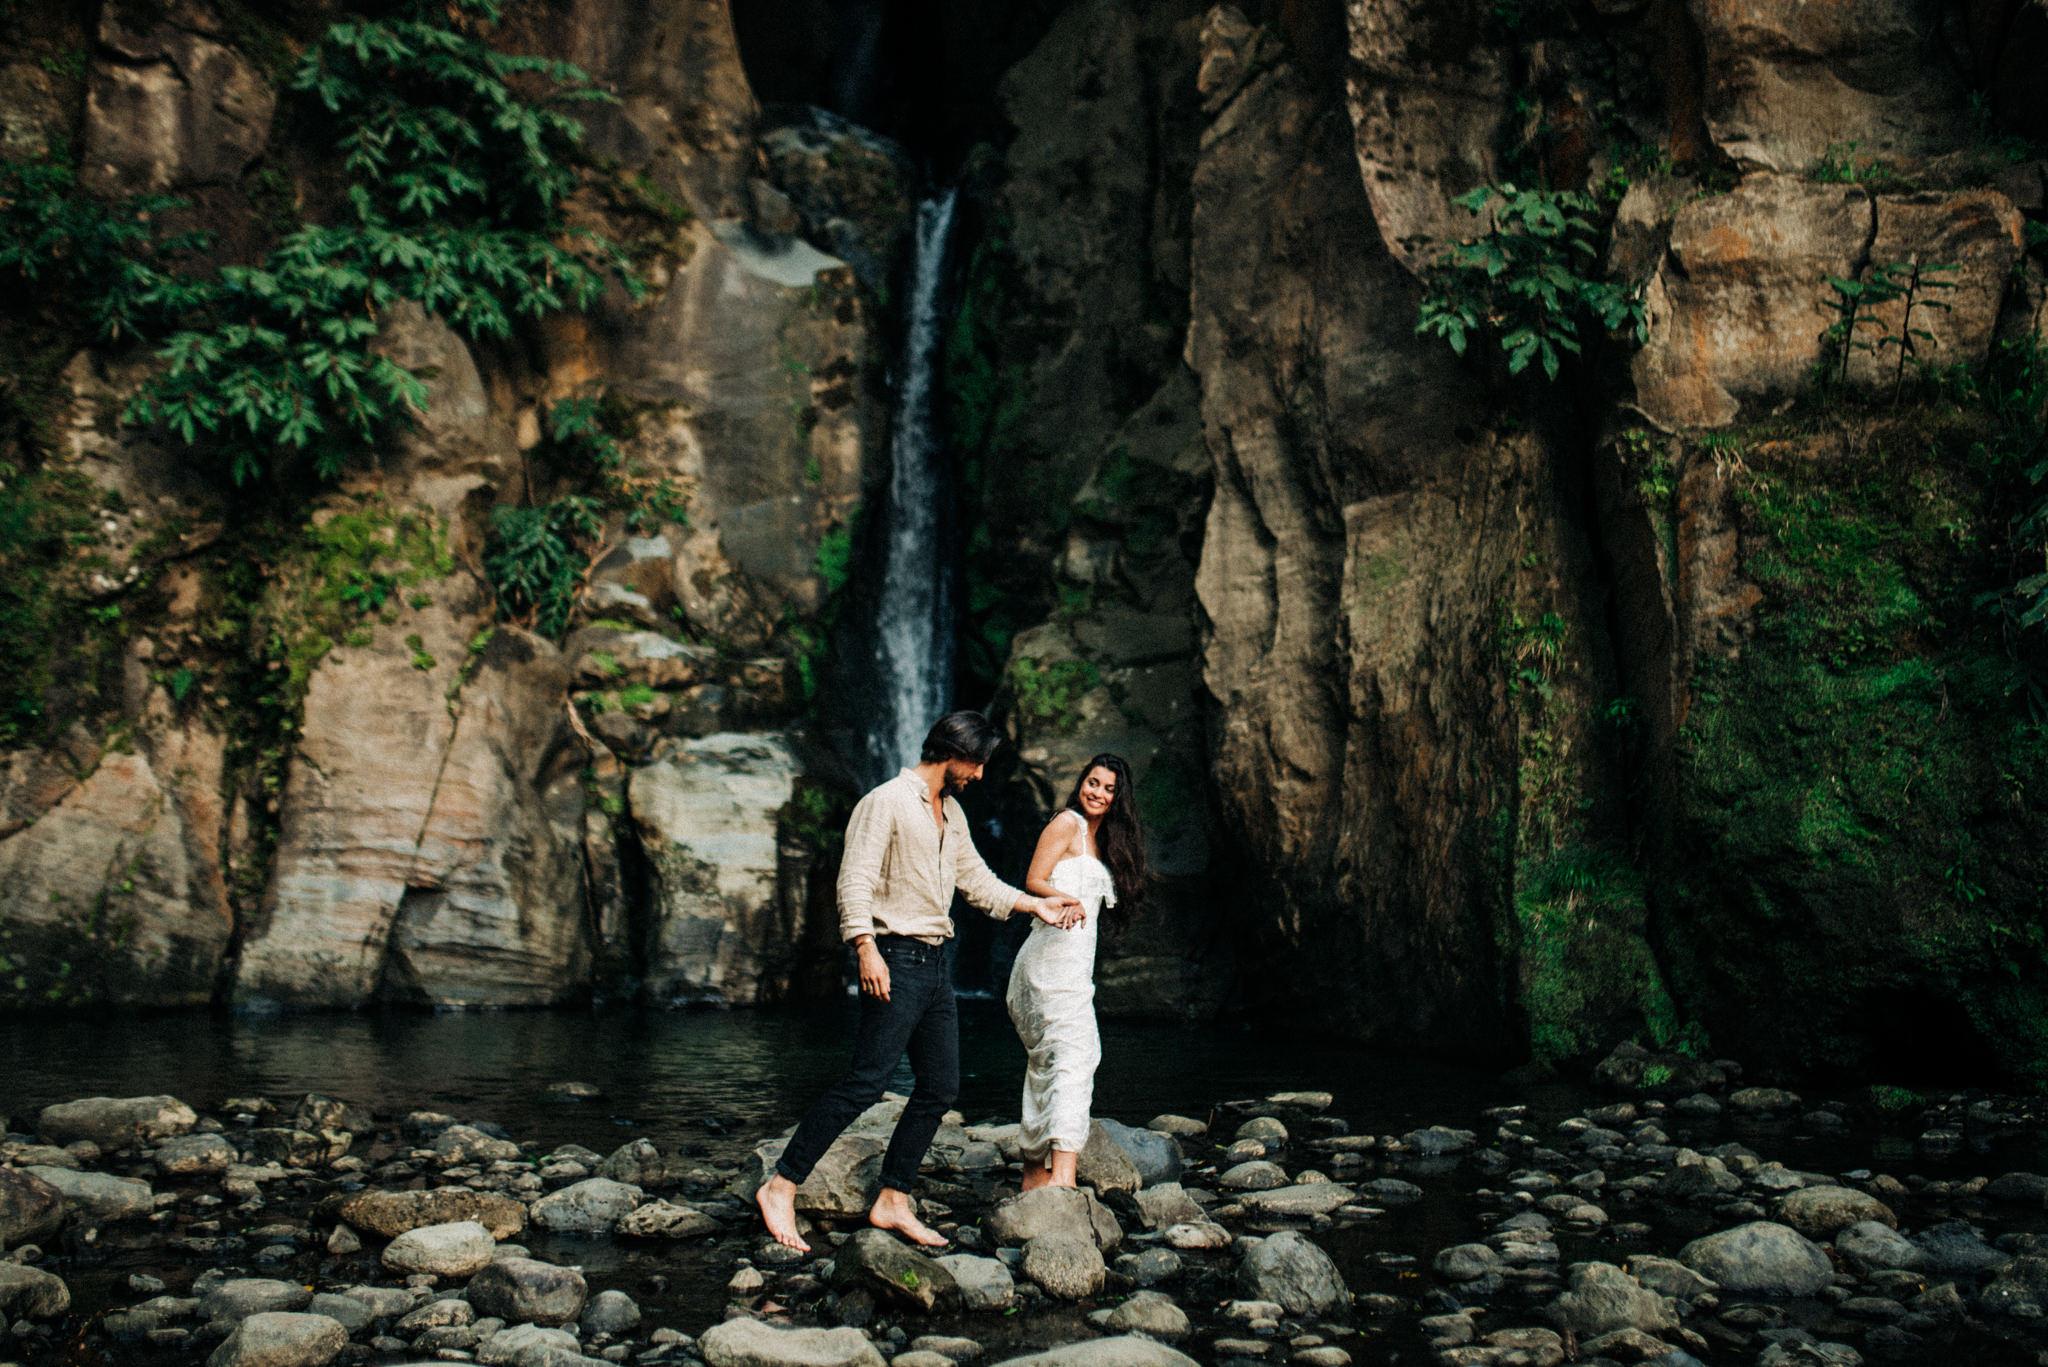 twyla jones photography - portugal azores waterfall couples engagement elopement -25.jpg